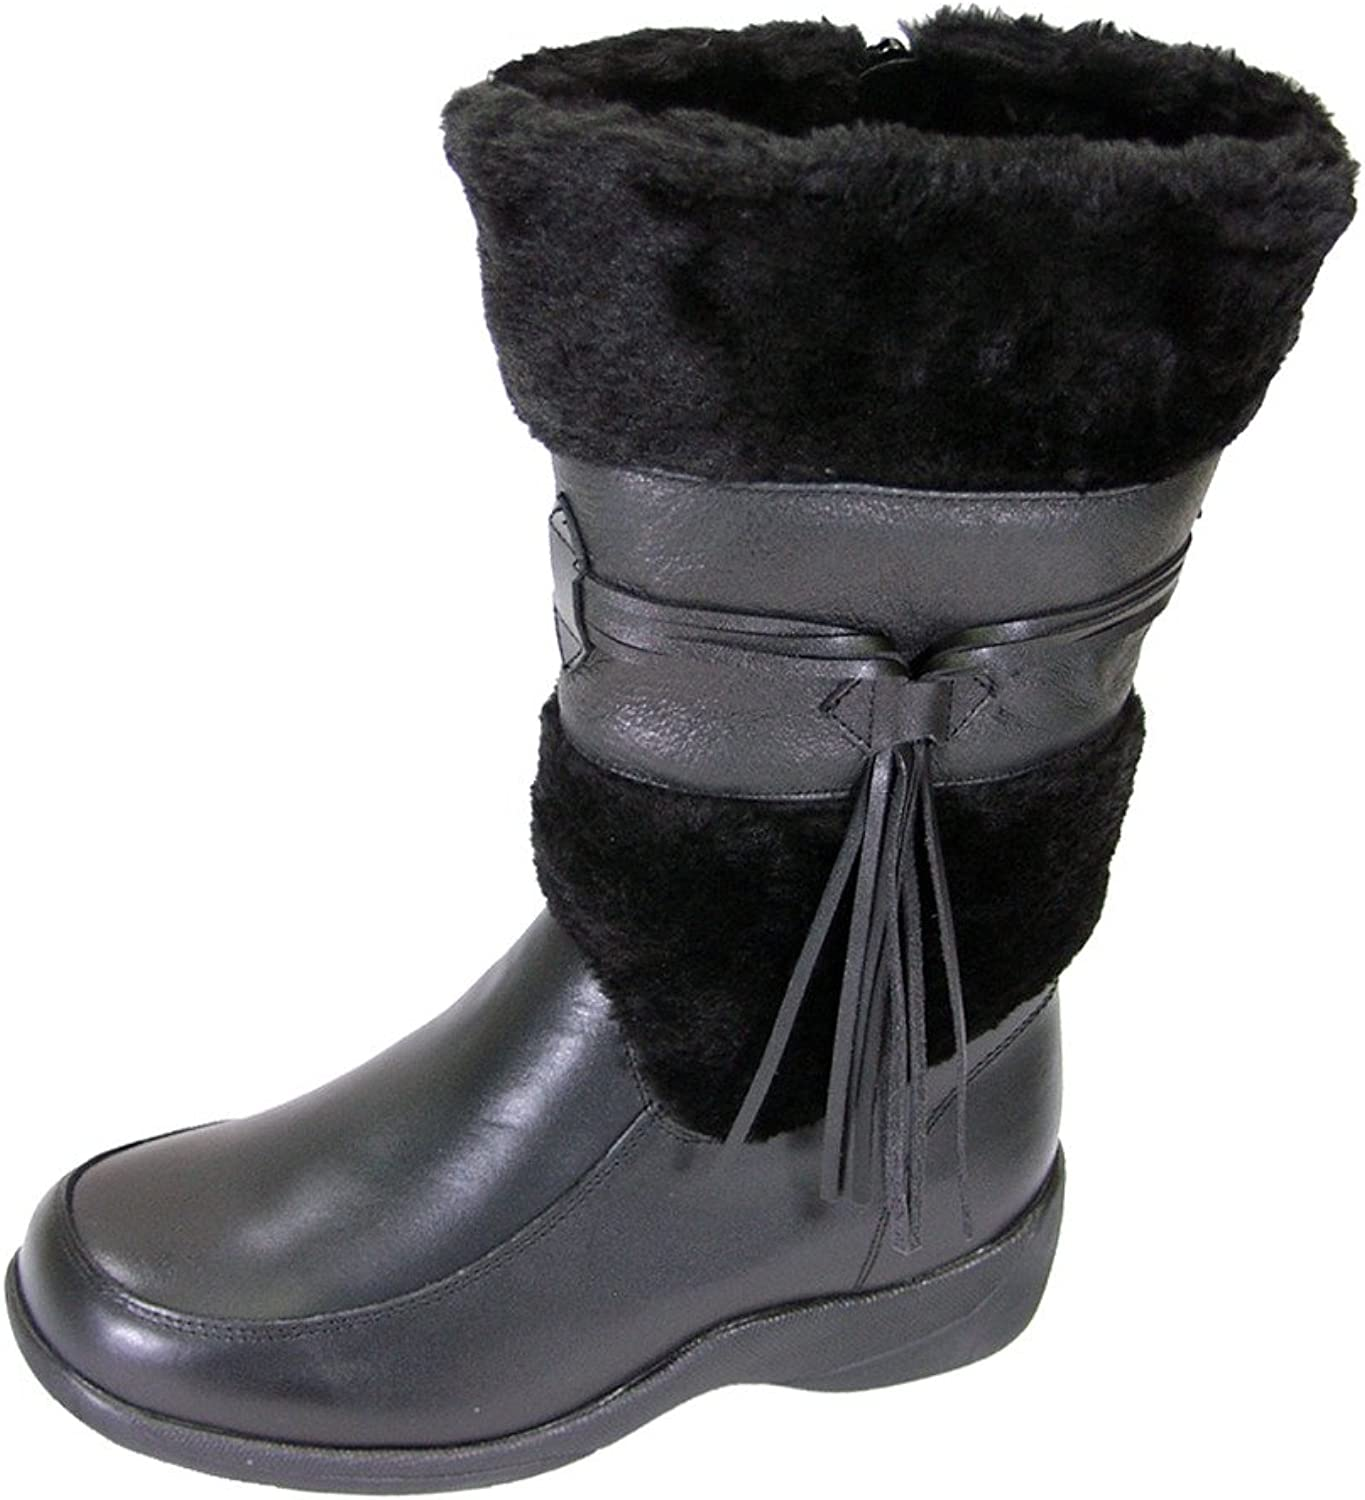 Peerage FIC white Women Wide Width Fleece Collared Leather Dress Boot (Size Measurement Guide Available)